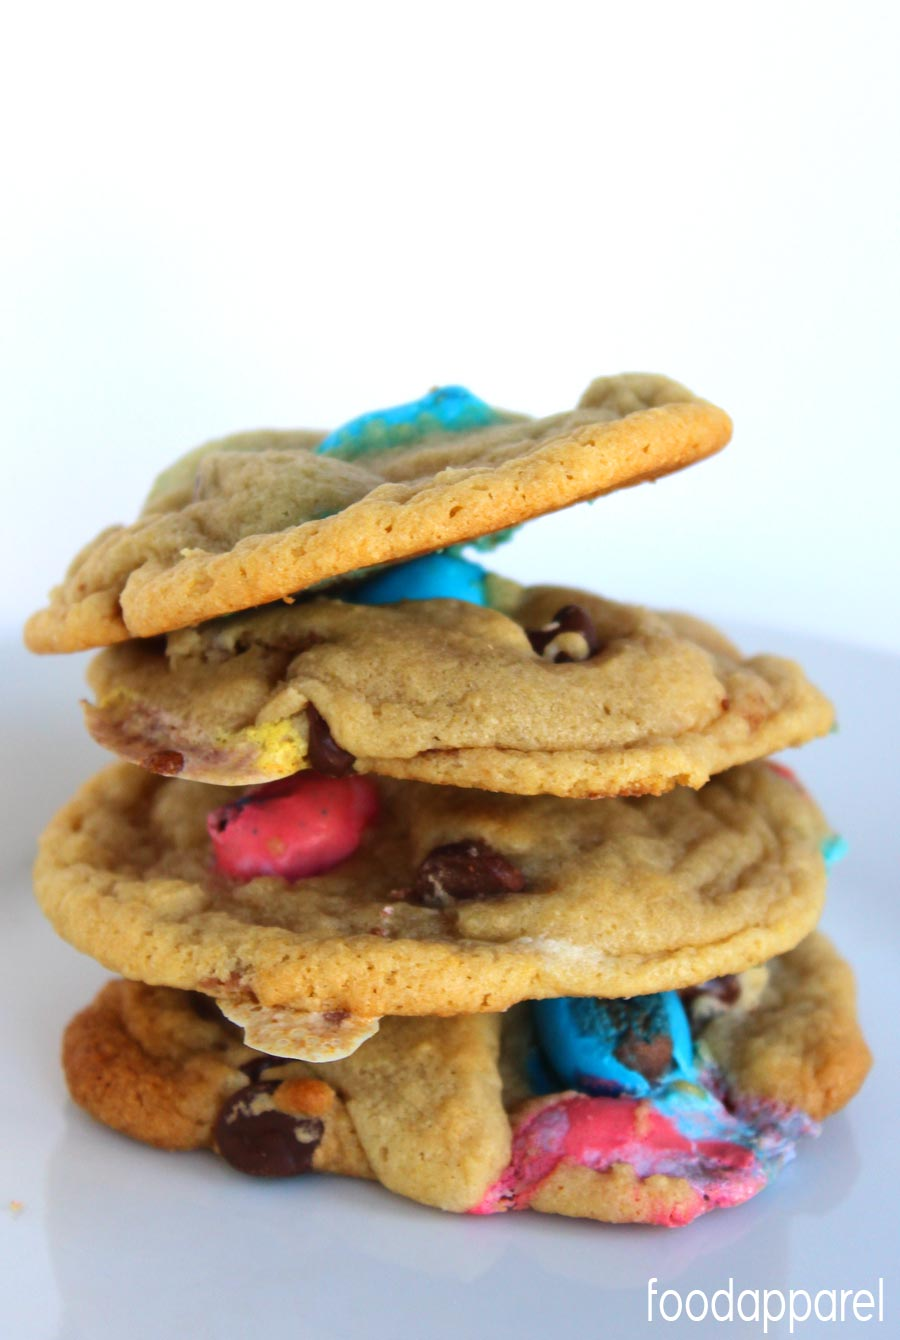 Malted Milk Chocolate Chip Cookies | Food Apparel